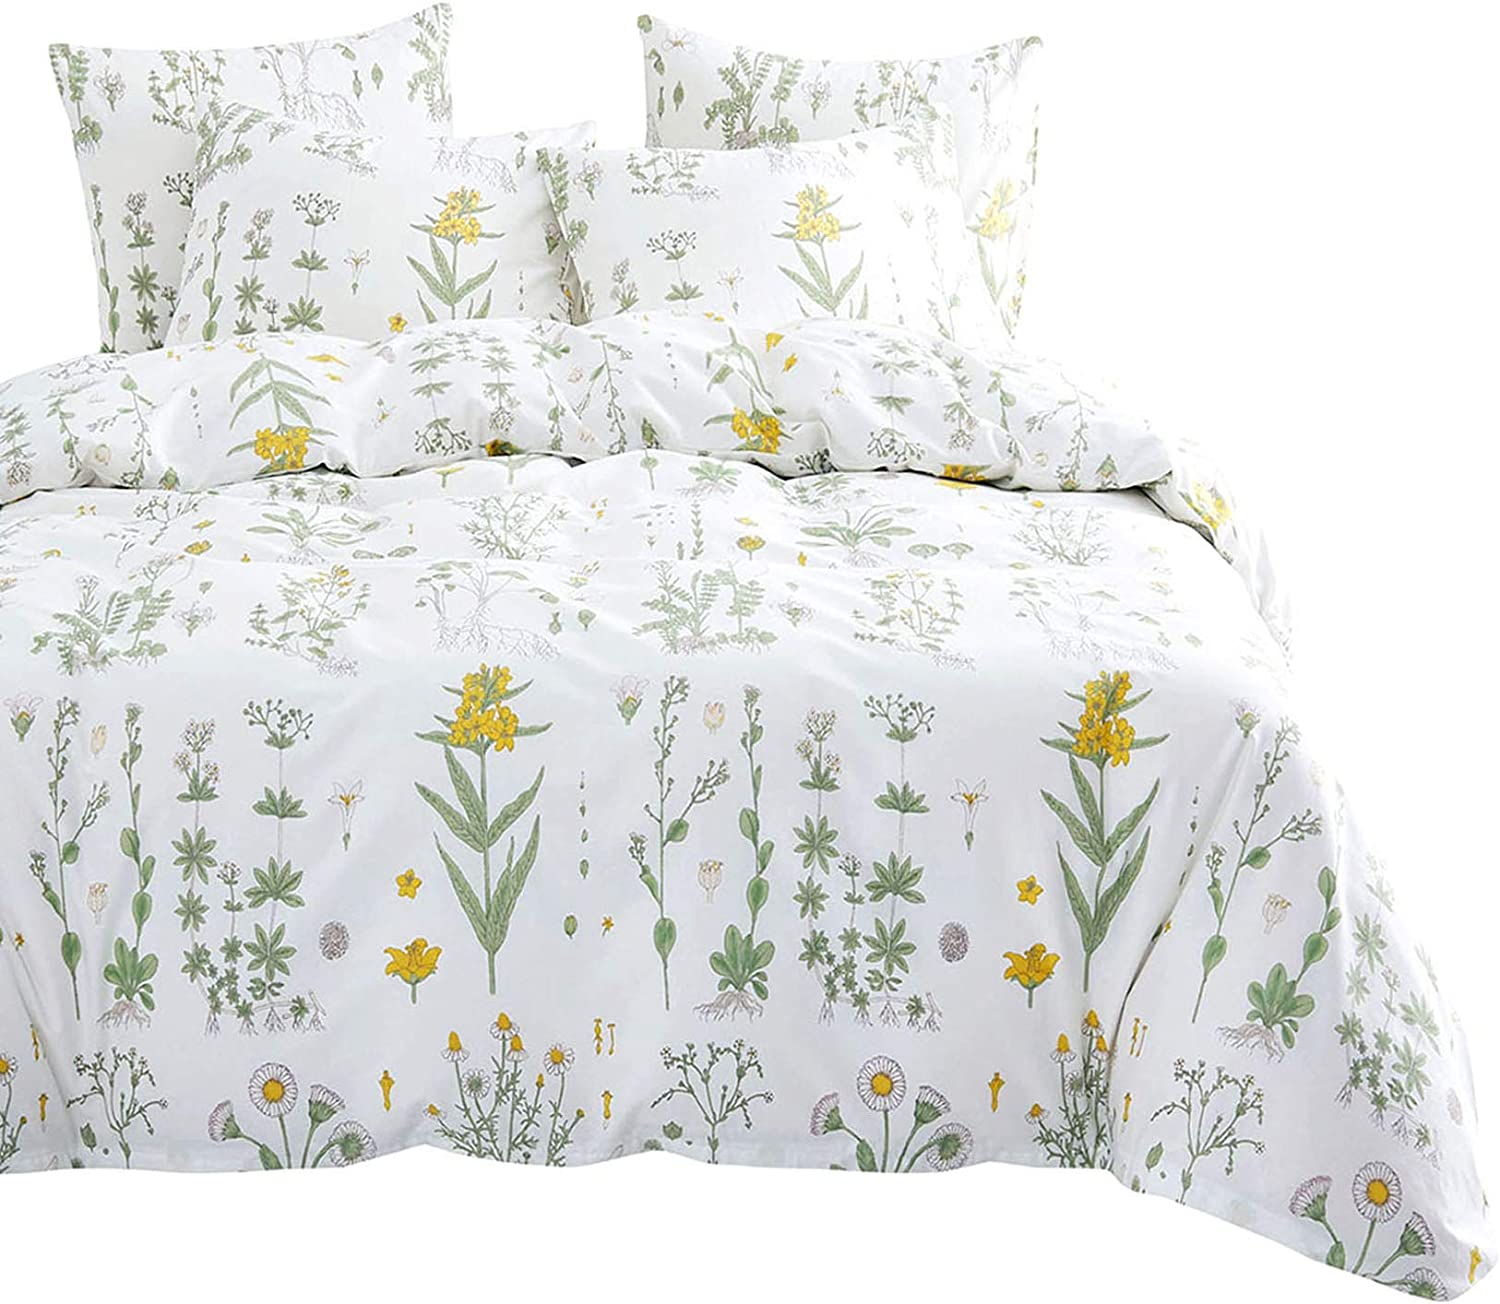 Wake In Cloud - Botanical Comforter Set, 4 Pillow Cases, Yellow Flowers Green Leaves Floral Garden Pattern Printed on White